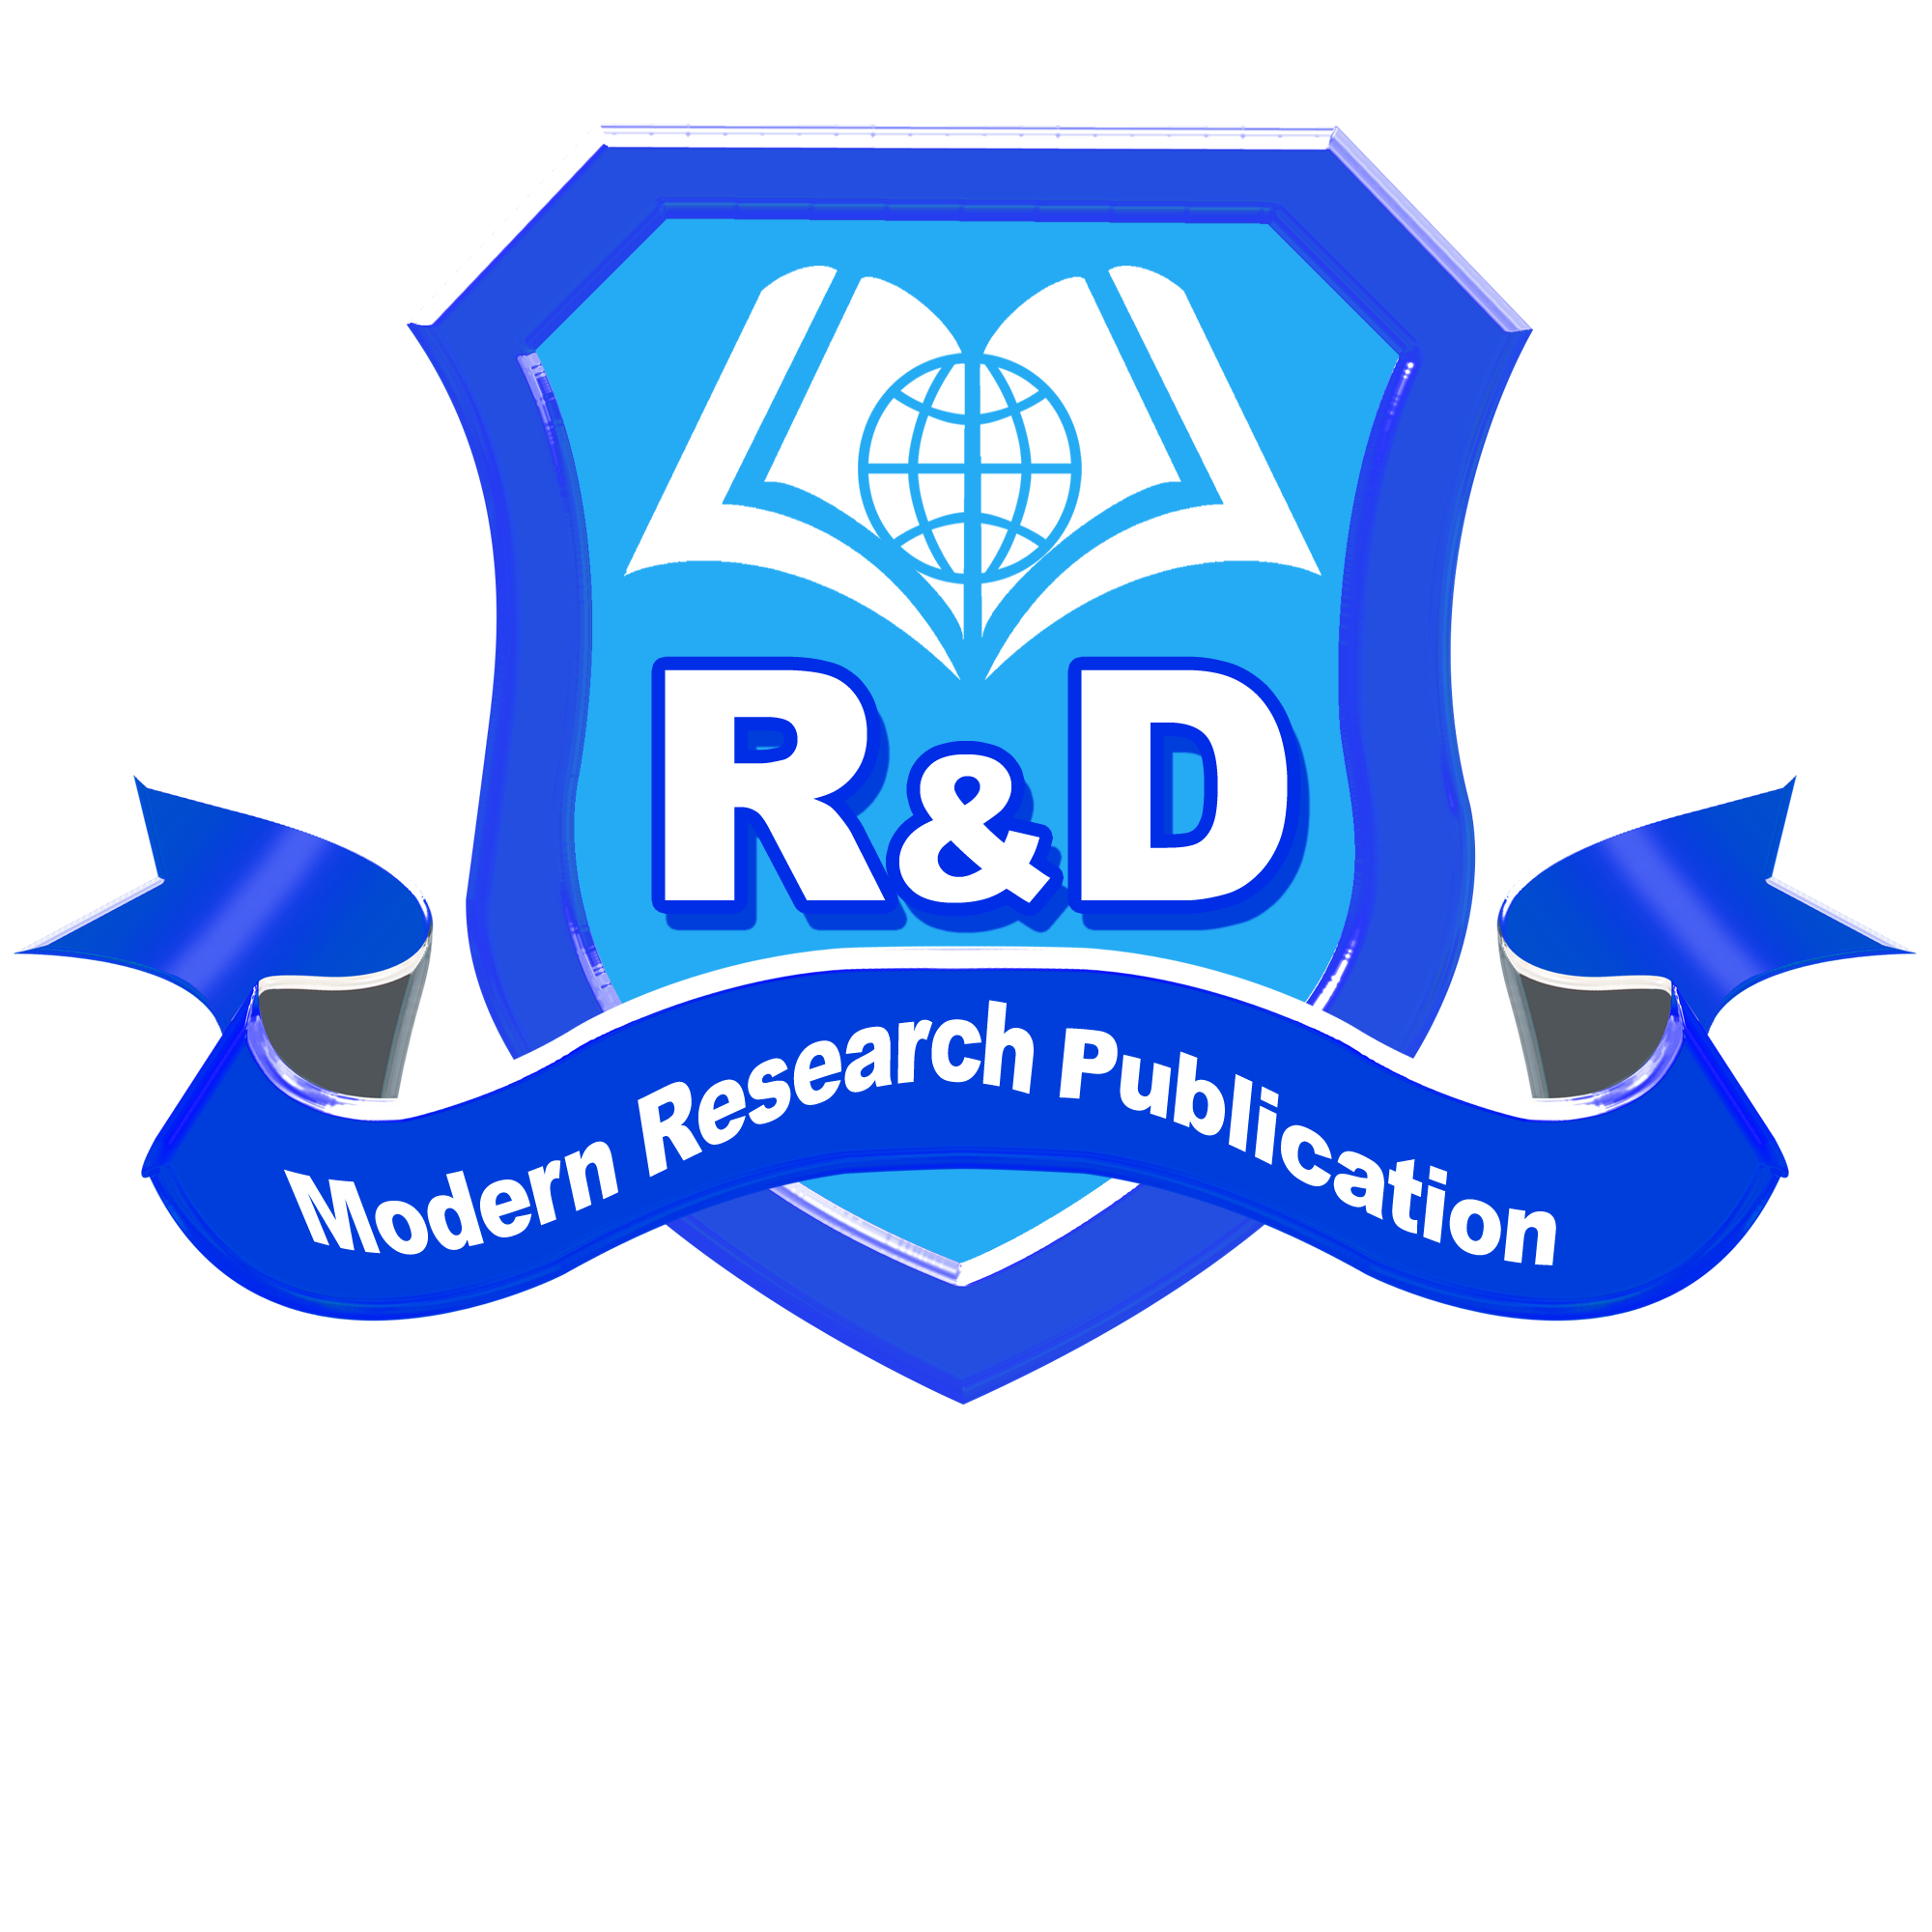 INTERNATIONAL JOURNAL OF MULTIDISCIPLINARY RESEARCH AND MODERN